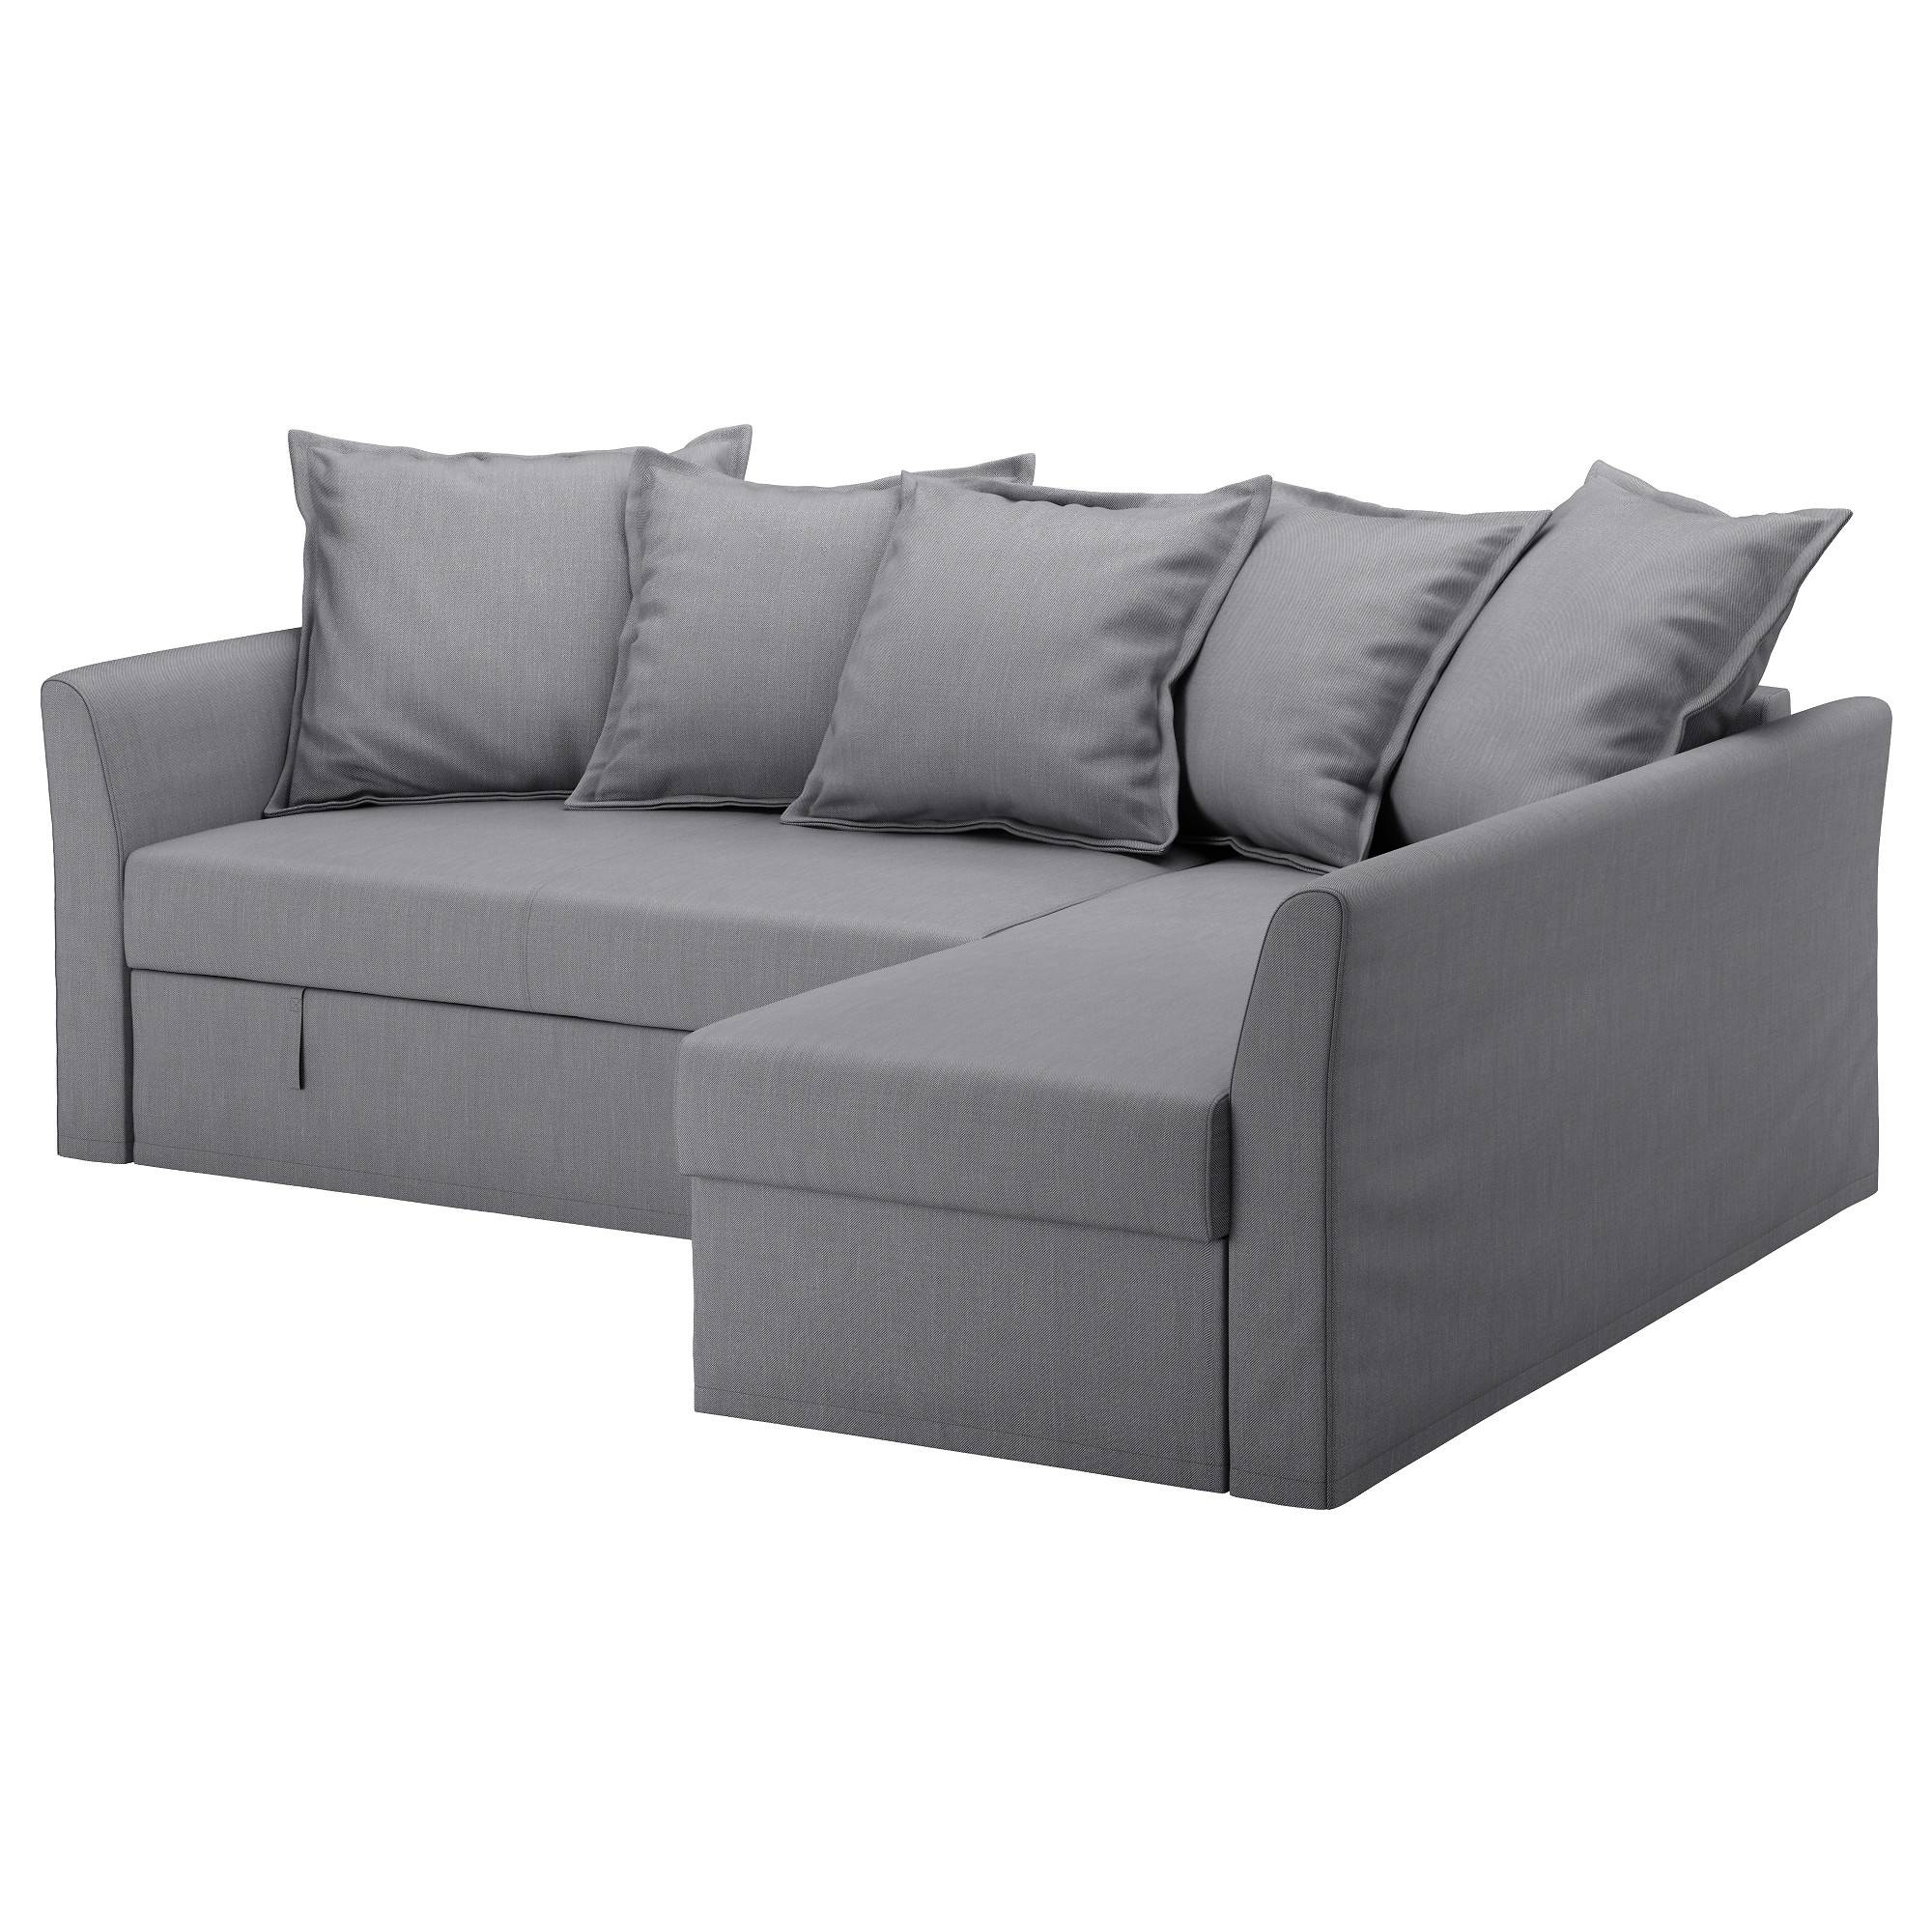 Holmsund Cover For Sleeper Sectional, 3 Seat - Nordvalla Medium for Storage Sofas Ikea (Image 15 of 25)